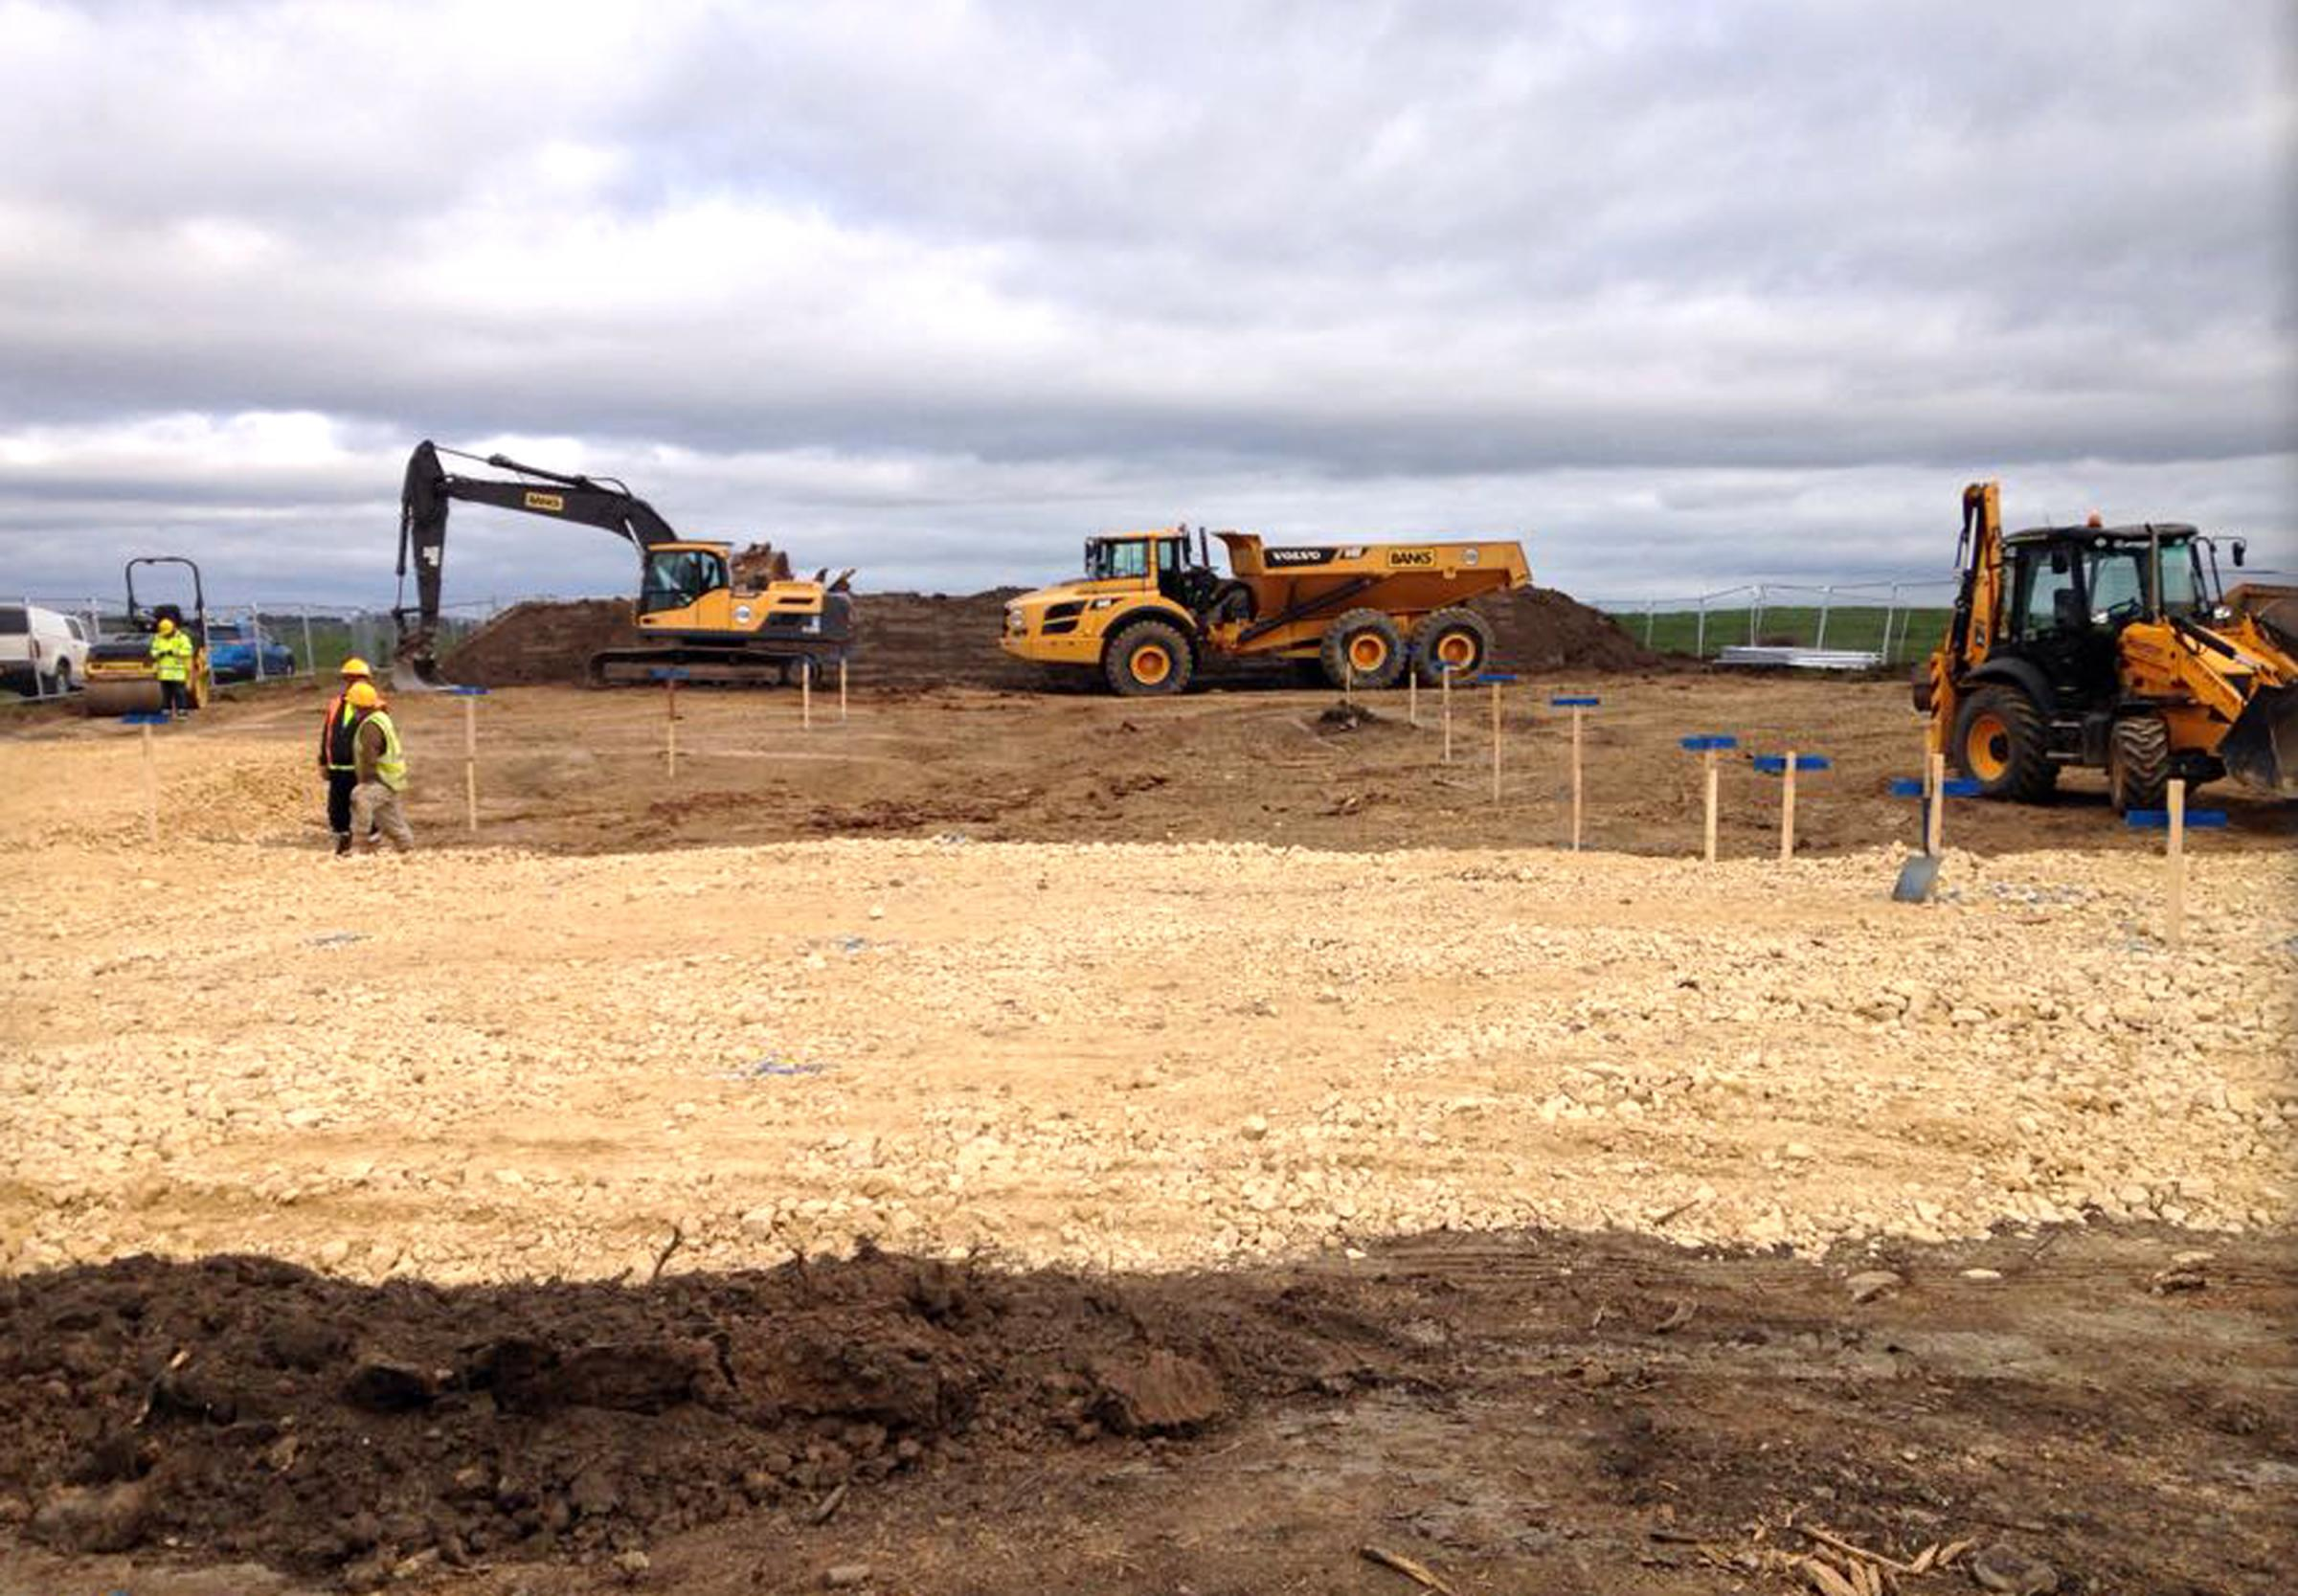 OPENCAST SITE: Test blasting is about to start at the Bradley site, between Dipton and Leadgate